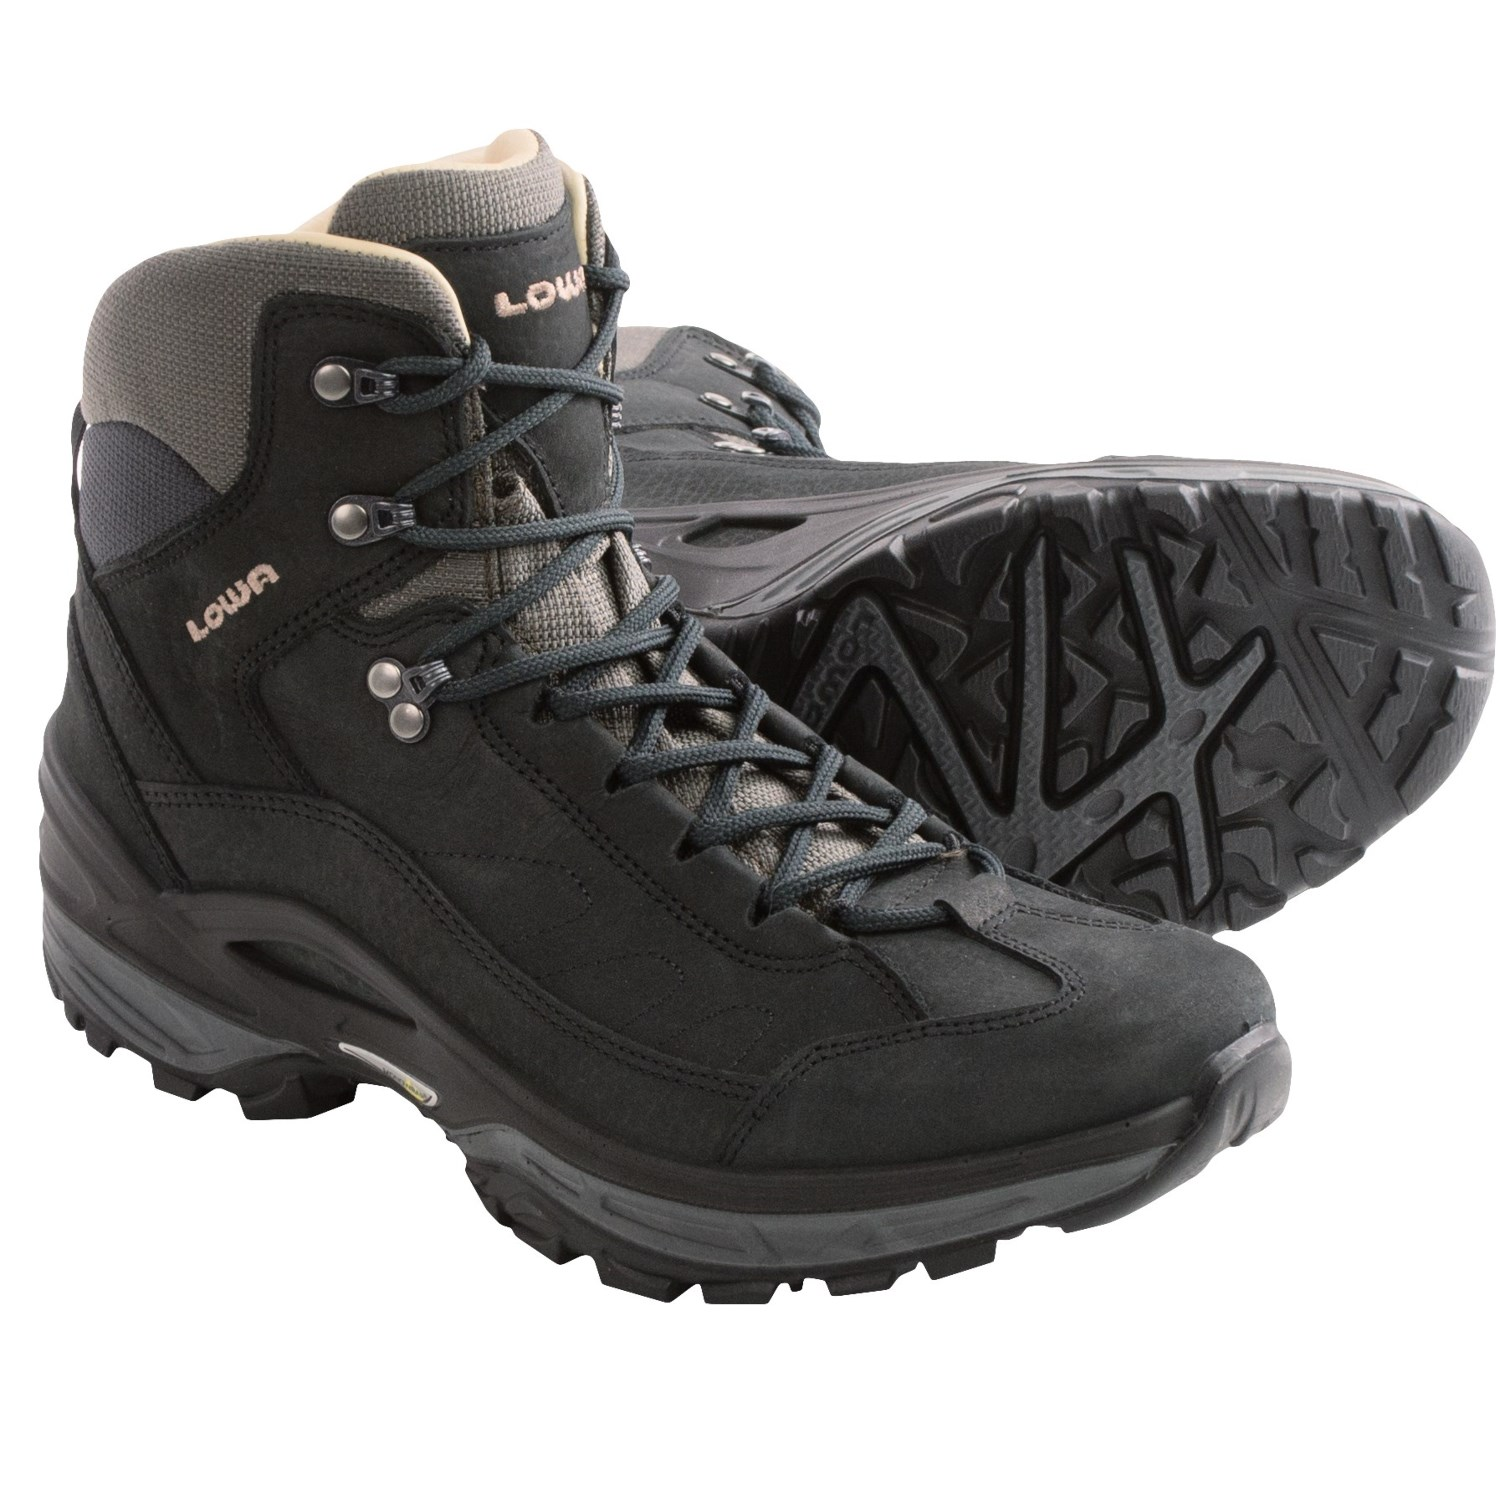 Leather hiking boots reviews